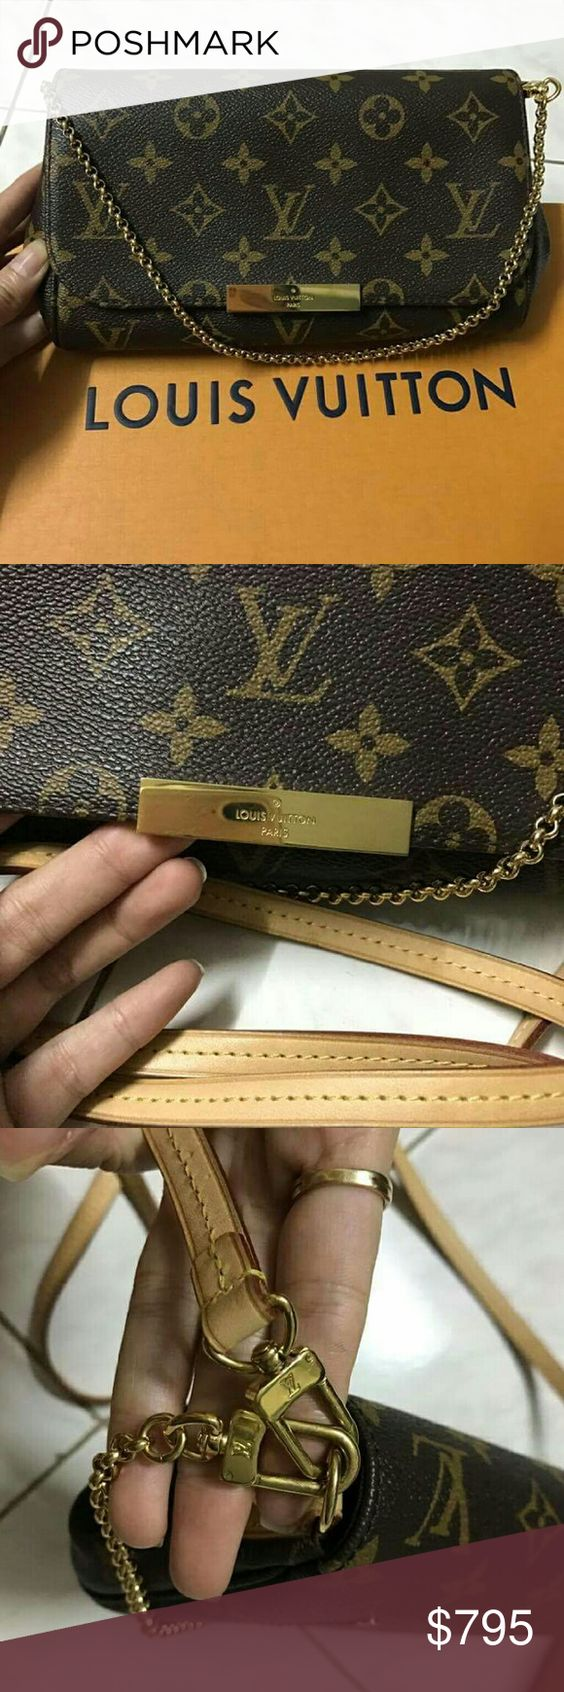 LV favorite pm In perfect condition. Bought it 3 months ago, date code is FL3186 which is made in week 38th of 2016, made in France.  I let it go because I need money, just moved in new house so I lost receipt somewhere among my unpack stuffs, still have box and dustbag. Louis Vuitton Bags Crossbody Bags